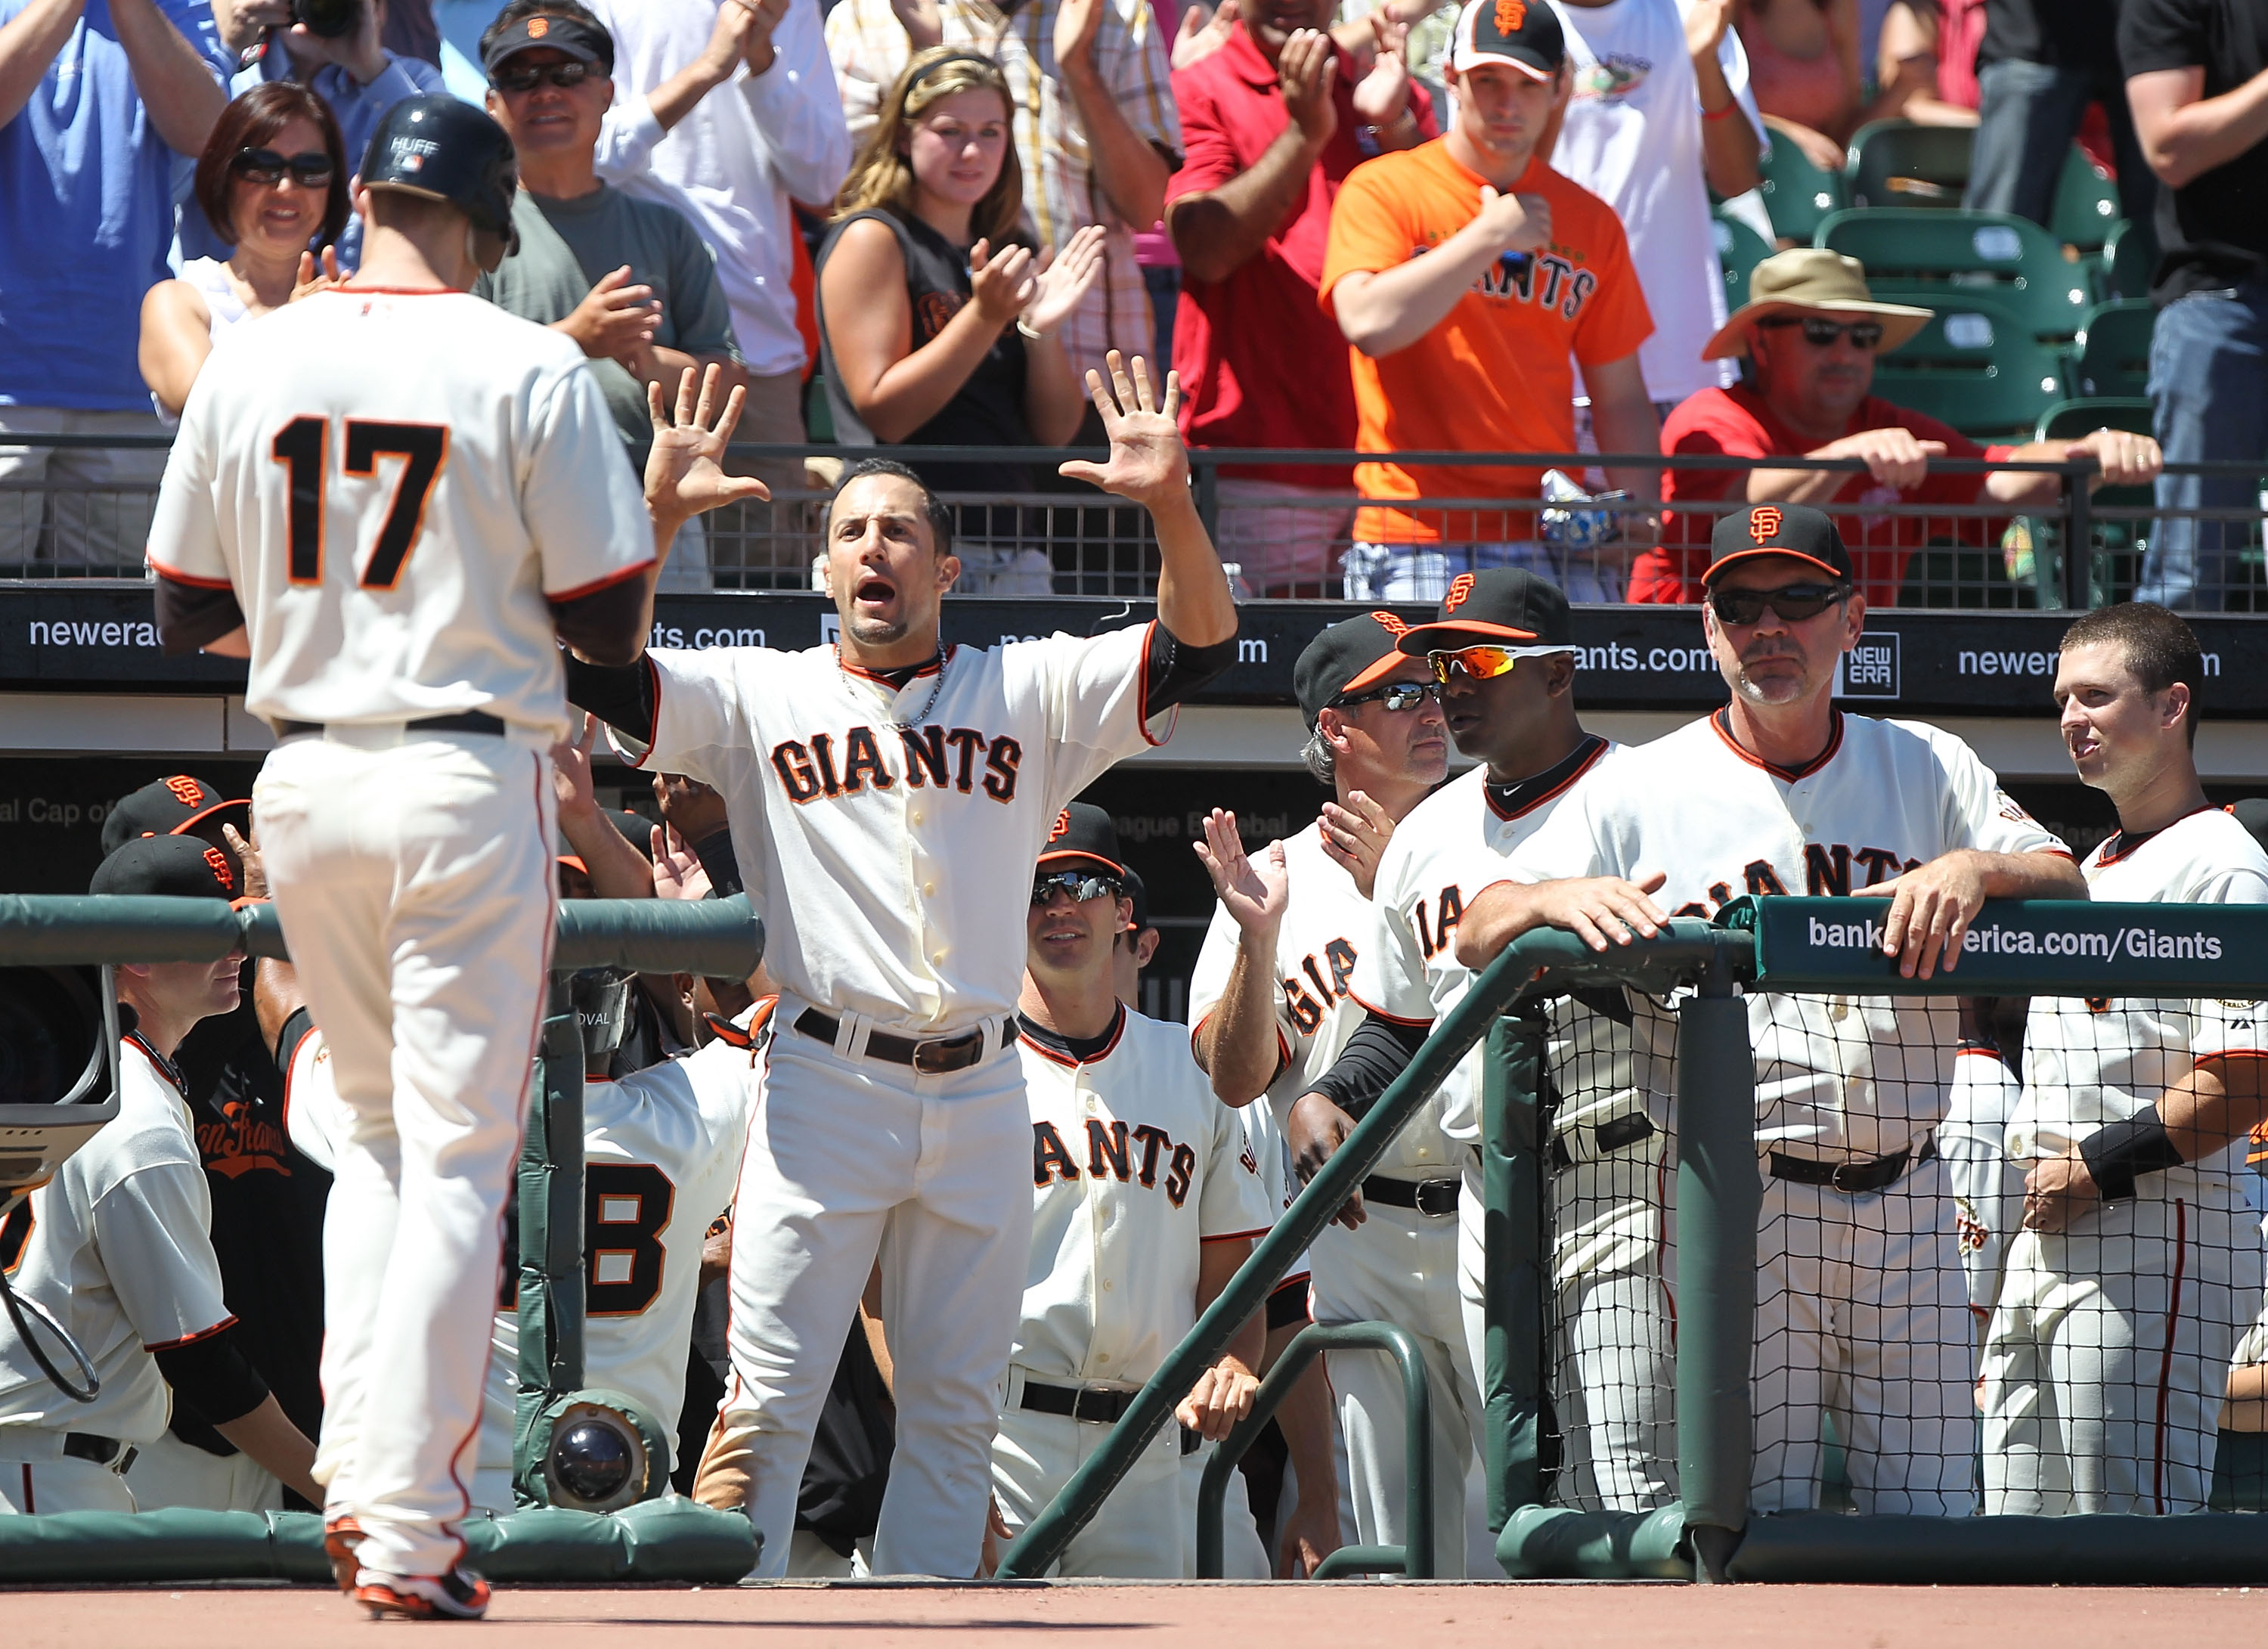 SAN FRANCISCO - JUNE 13:  Aubrey Huff #17 of the San Francisco Giants celebrates with Andres Torres #56 after hitting a two run home run in the sixth inning against the Oakland Athletics during an MLB game at AT&T Park on June 13, 2010 in San Francisco, C